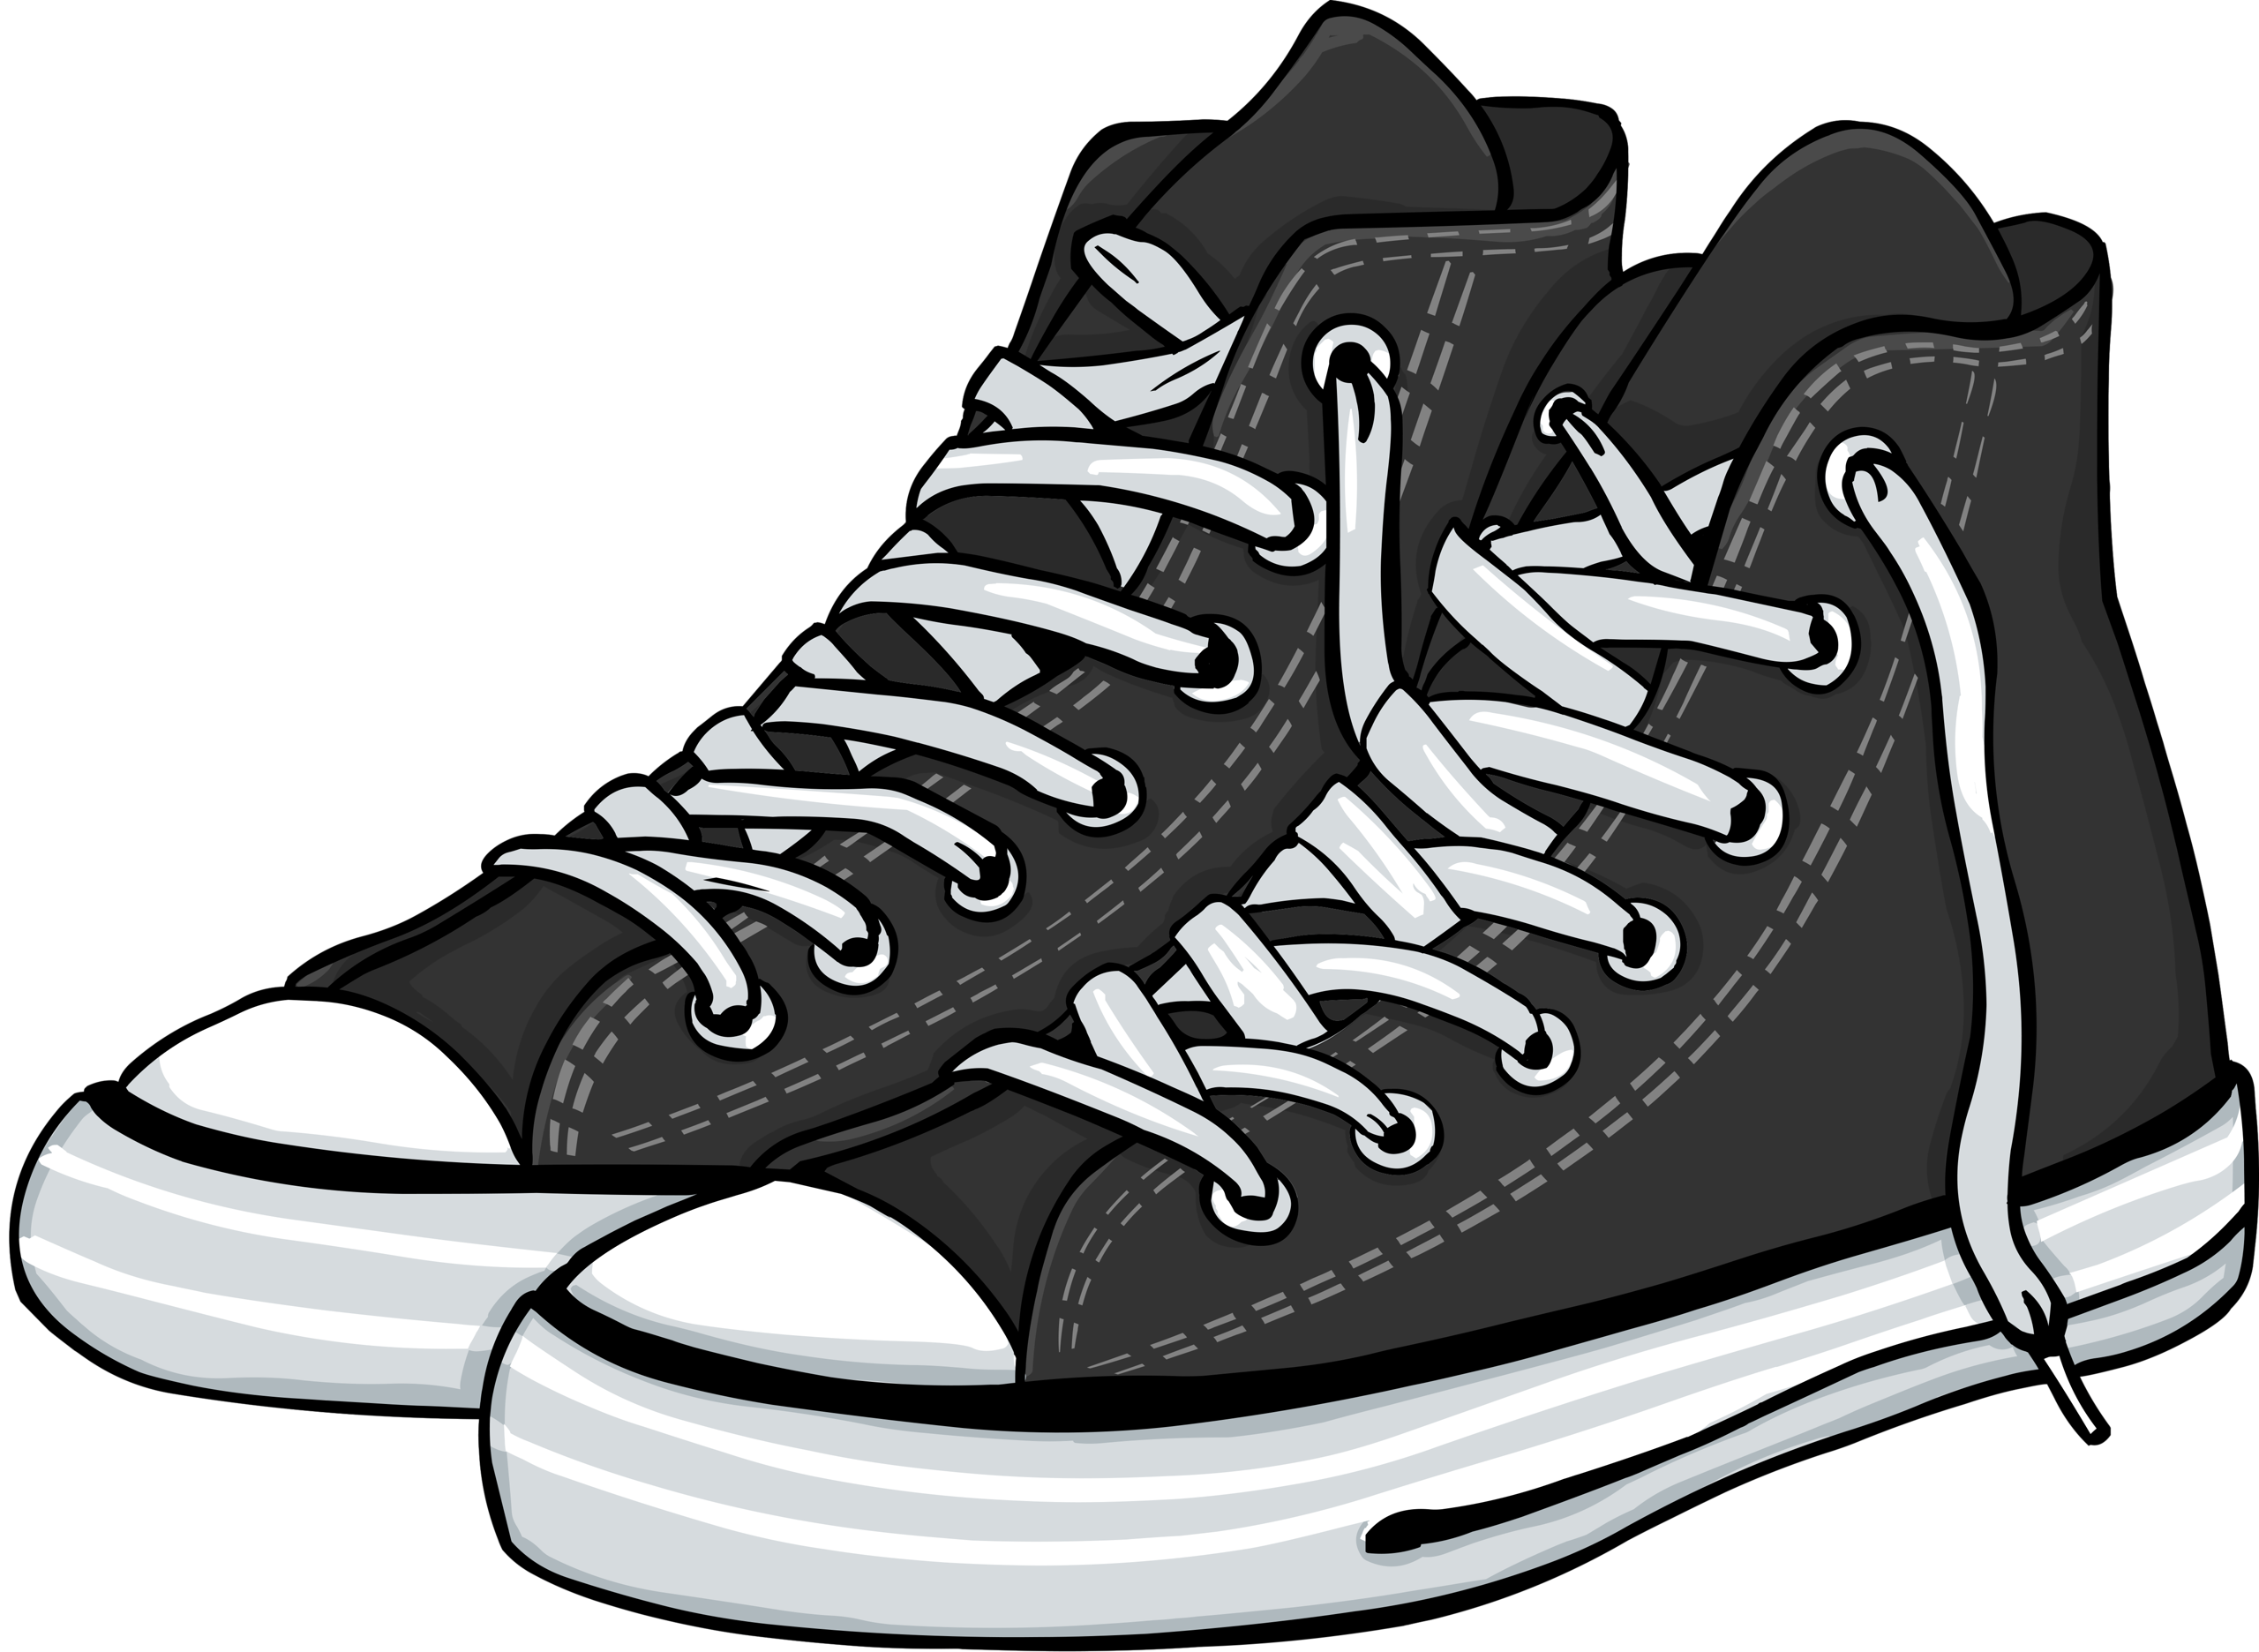 picture black and white library Converse clipart. Shutterstock png pinterest clip